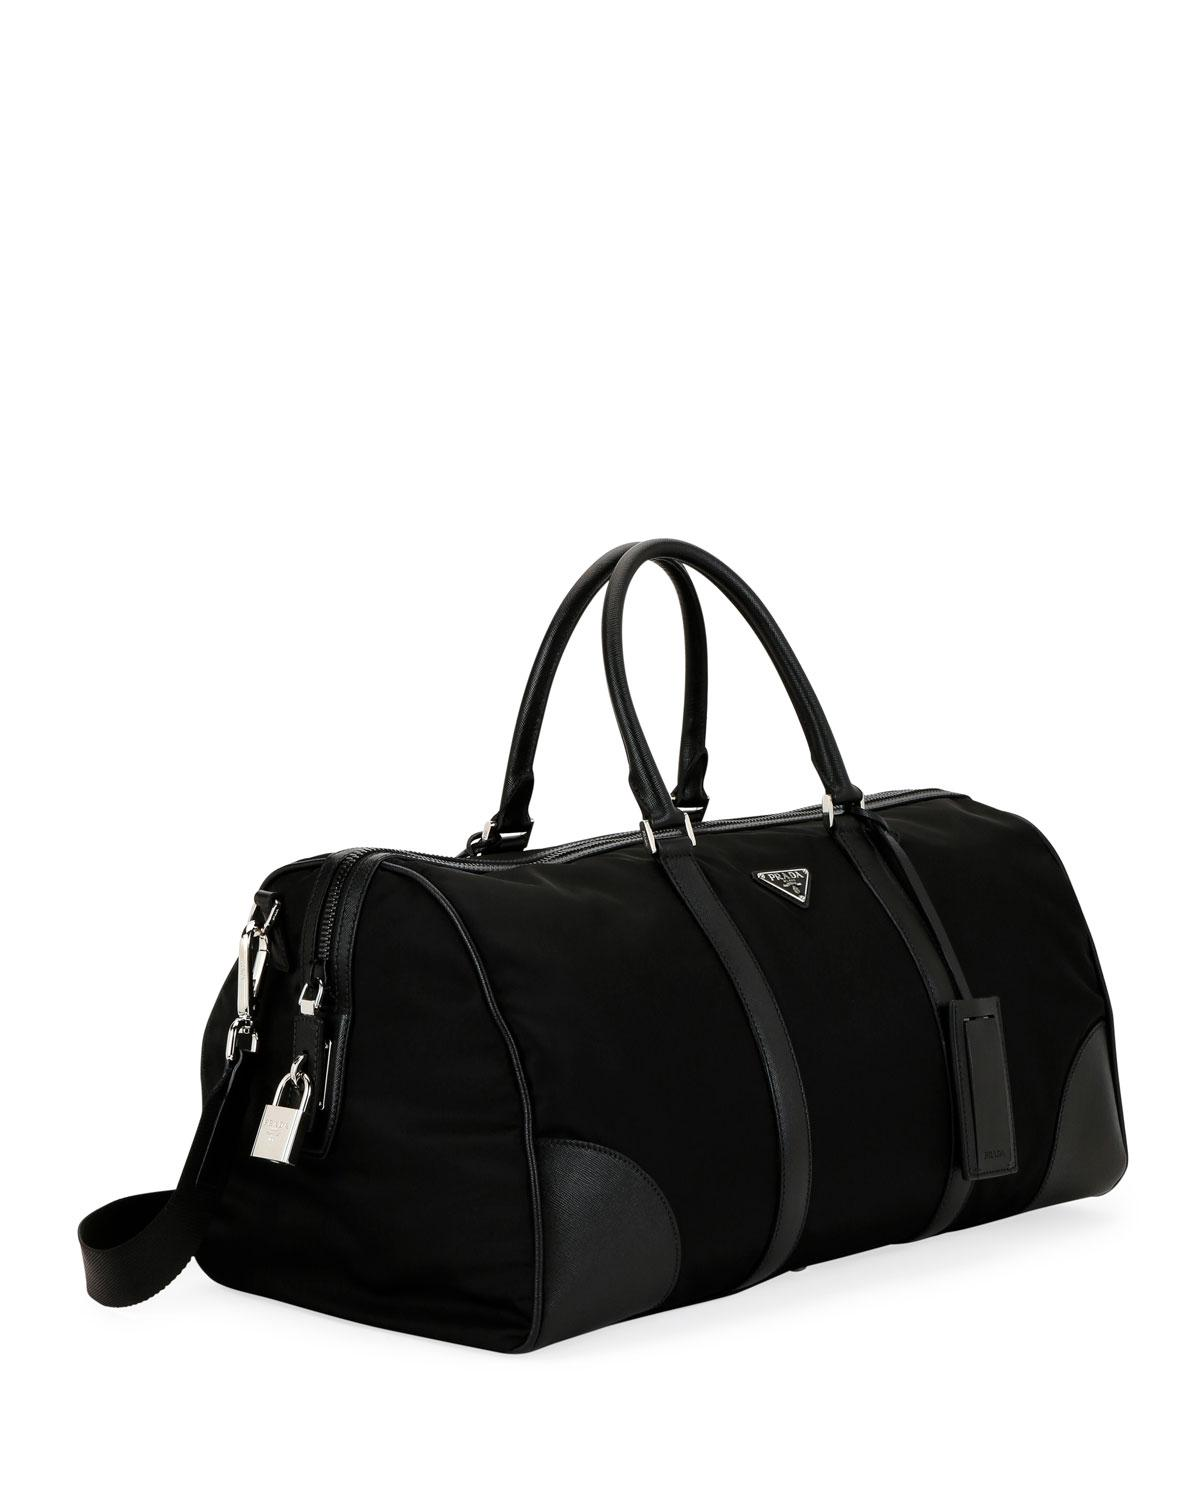 964a016964e3 Prada Men's Nylon & Saffiano Duffel Bag in Black for Men - Lyst